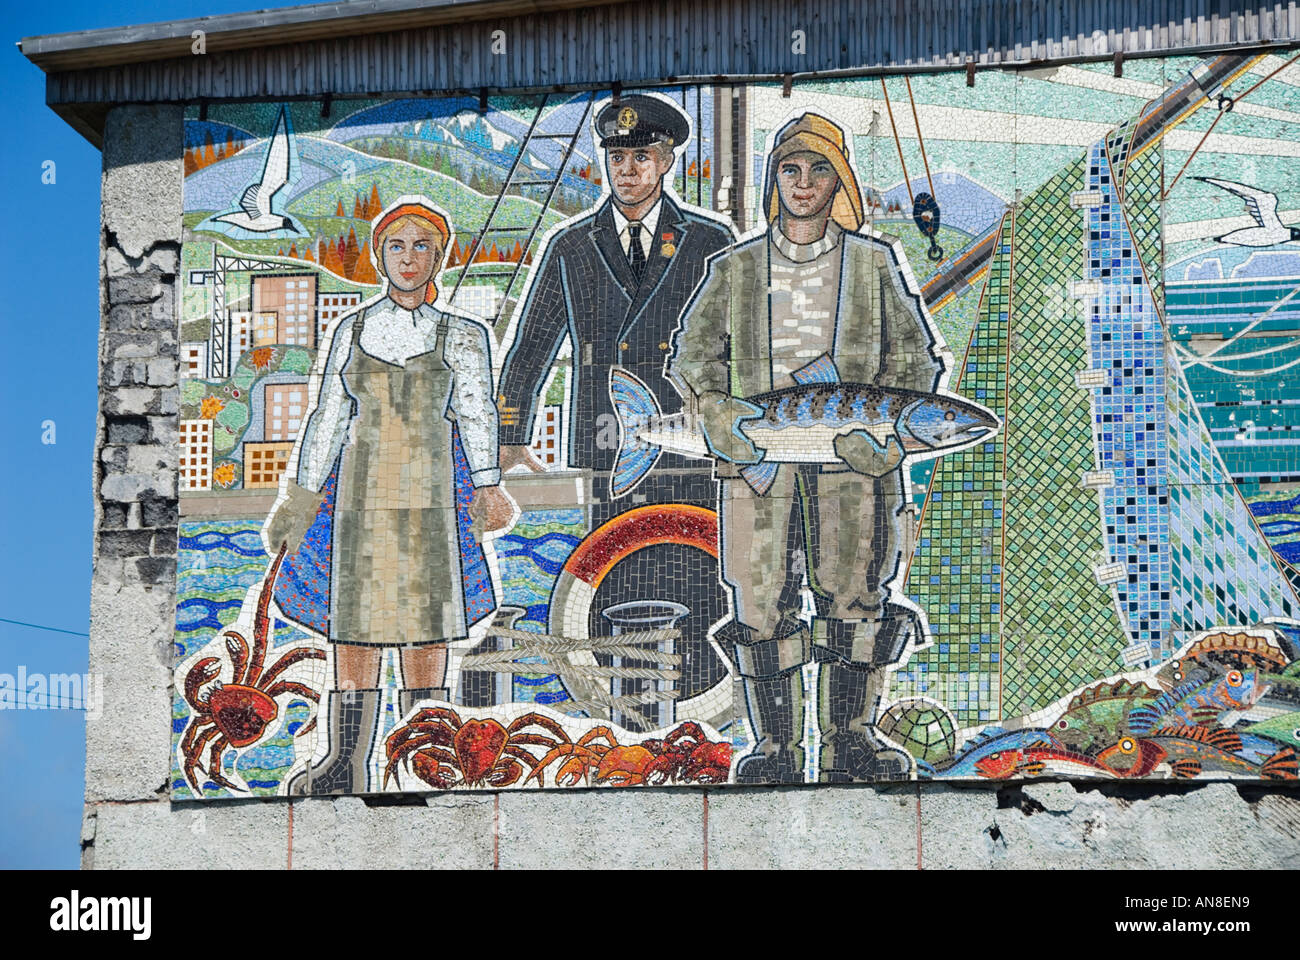 Large soviet era murals with fishing theme on building in Ozersky village on Sakhalin Island Russia - Stock Image